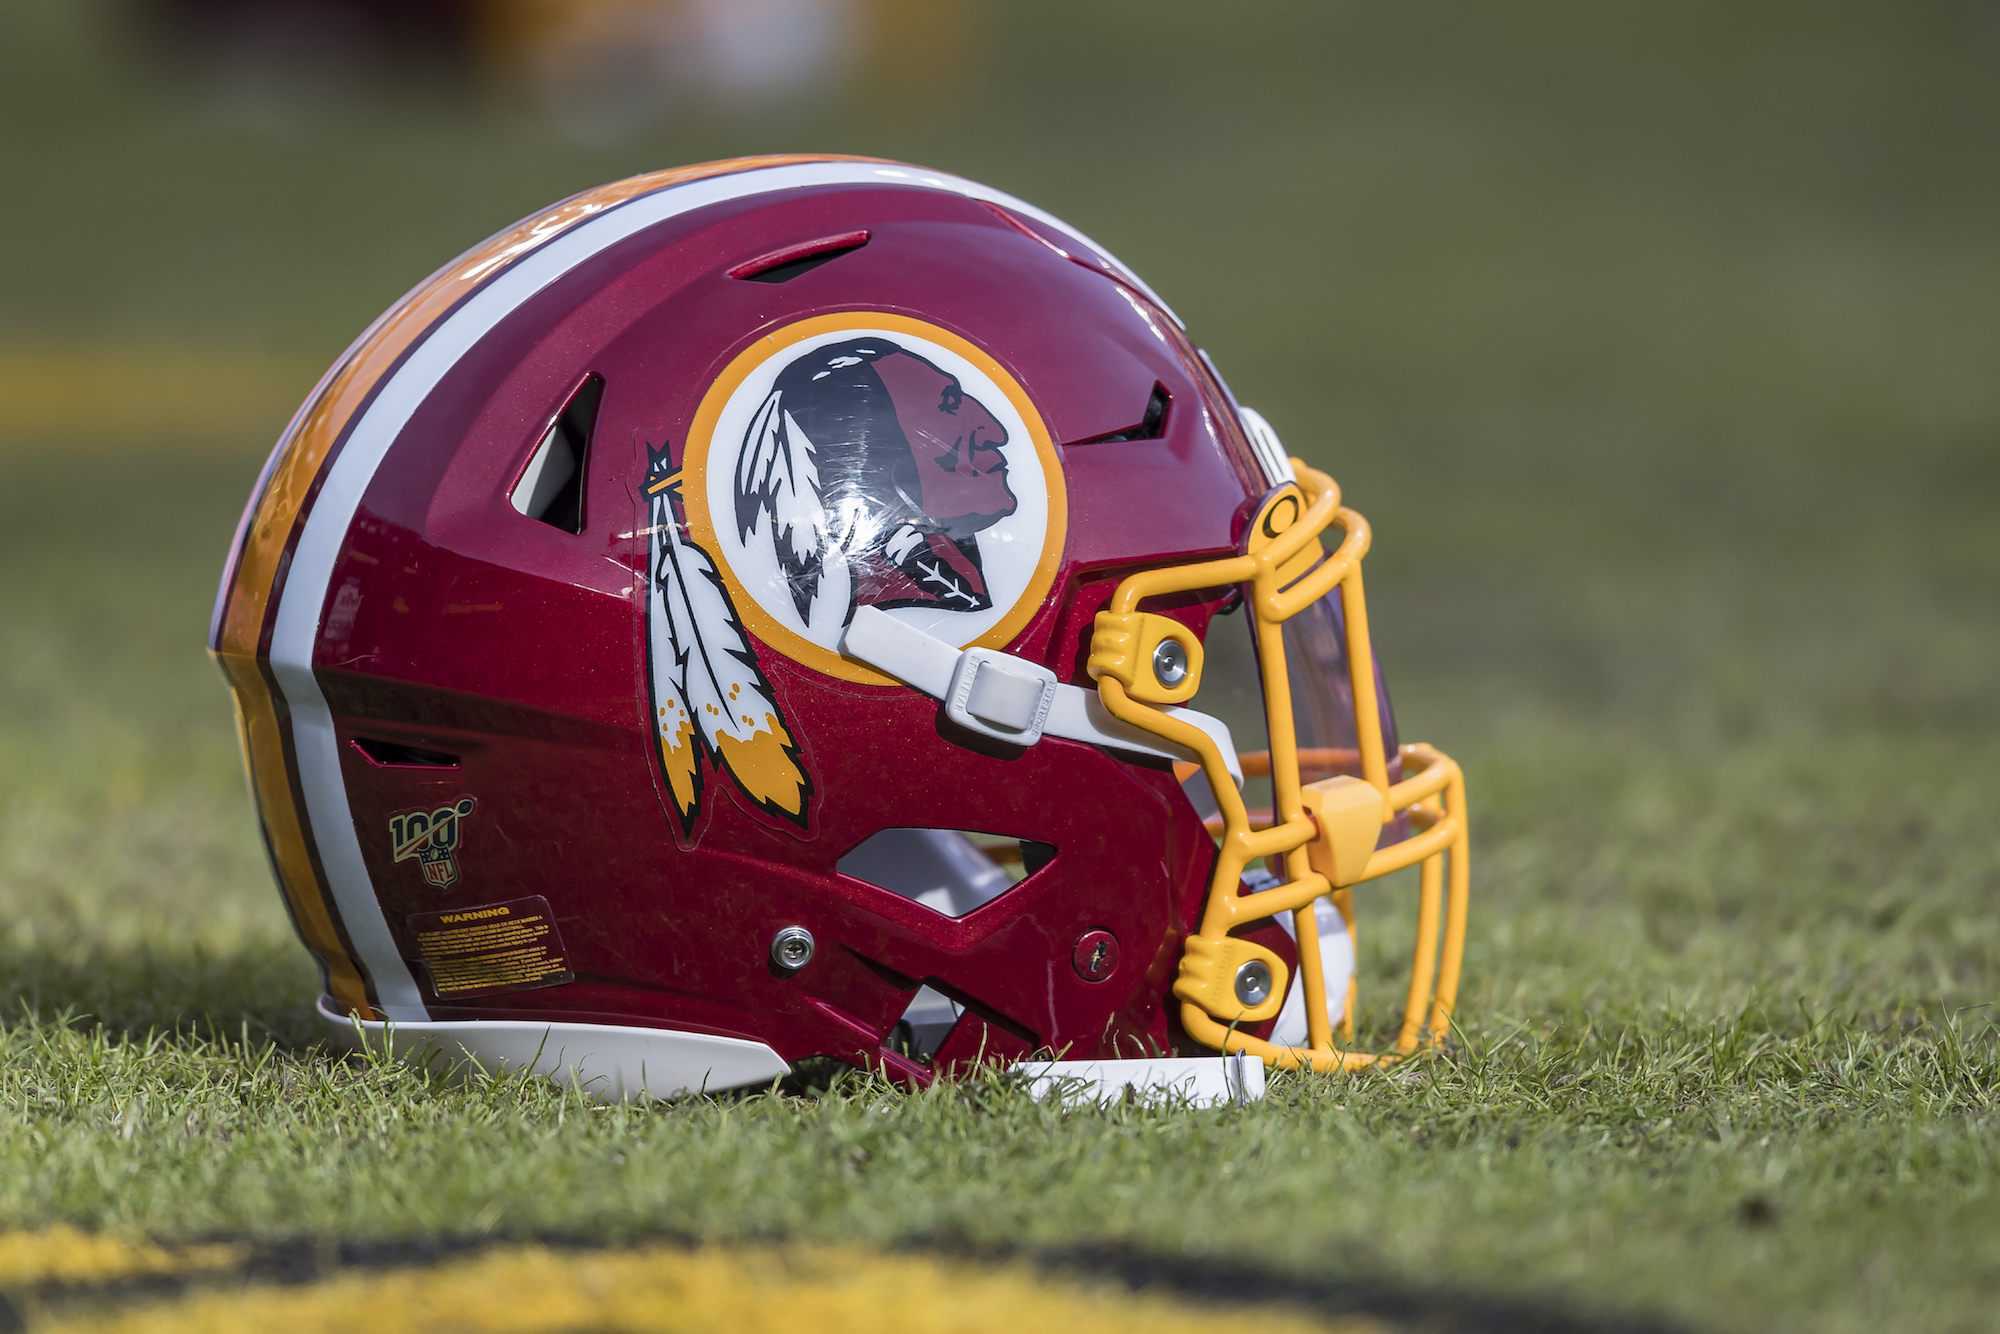 After years of pressure, the Washington Redskins are finally changing their name.